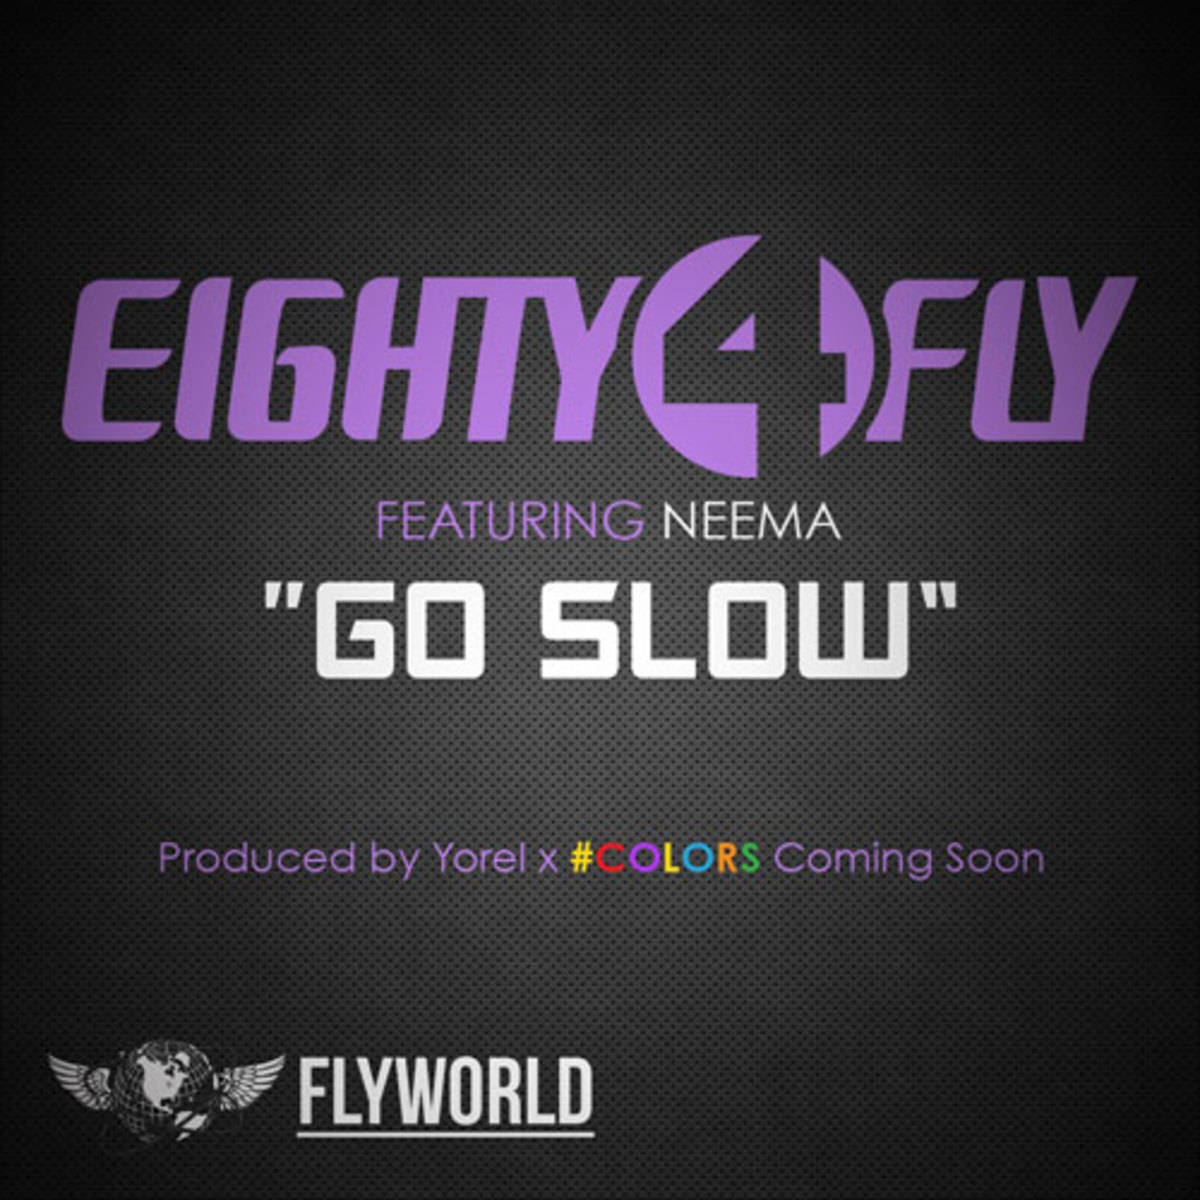 eighty4fly-goslow.jpg